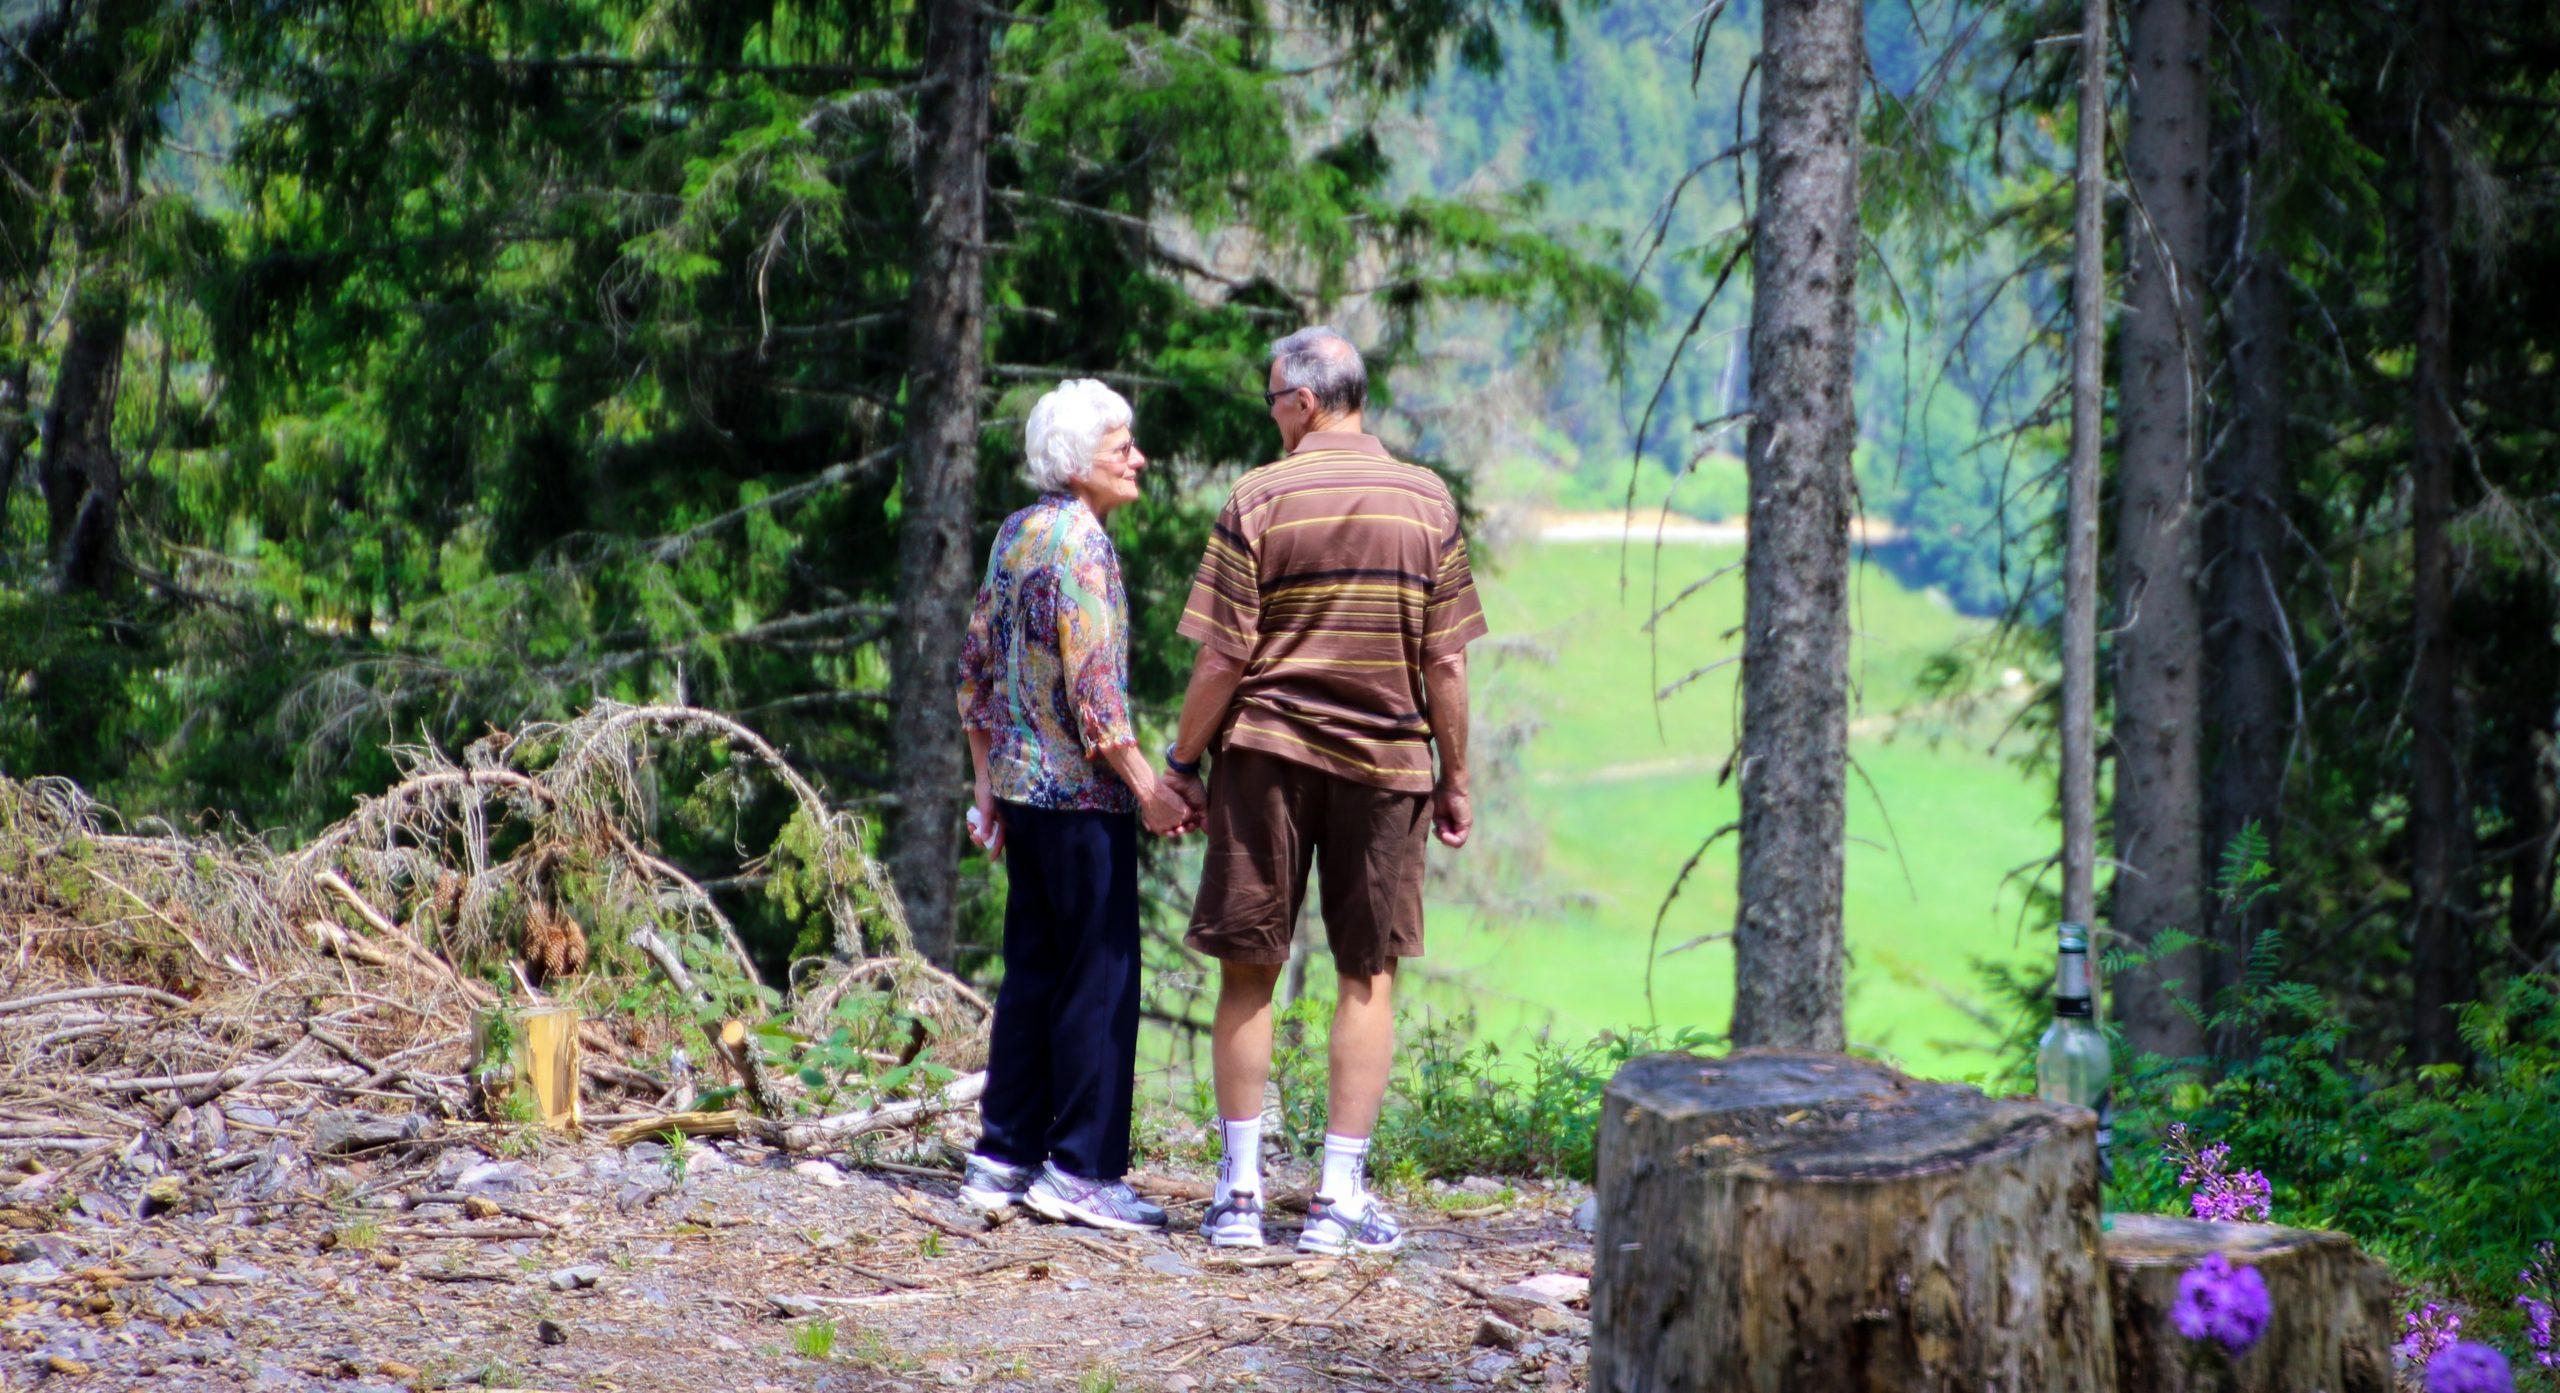 An elderly couple standing in the forest